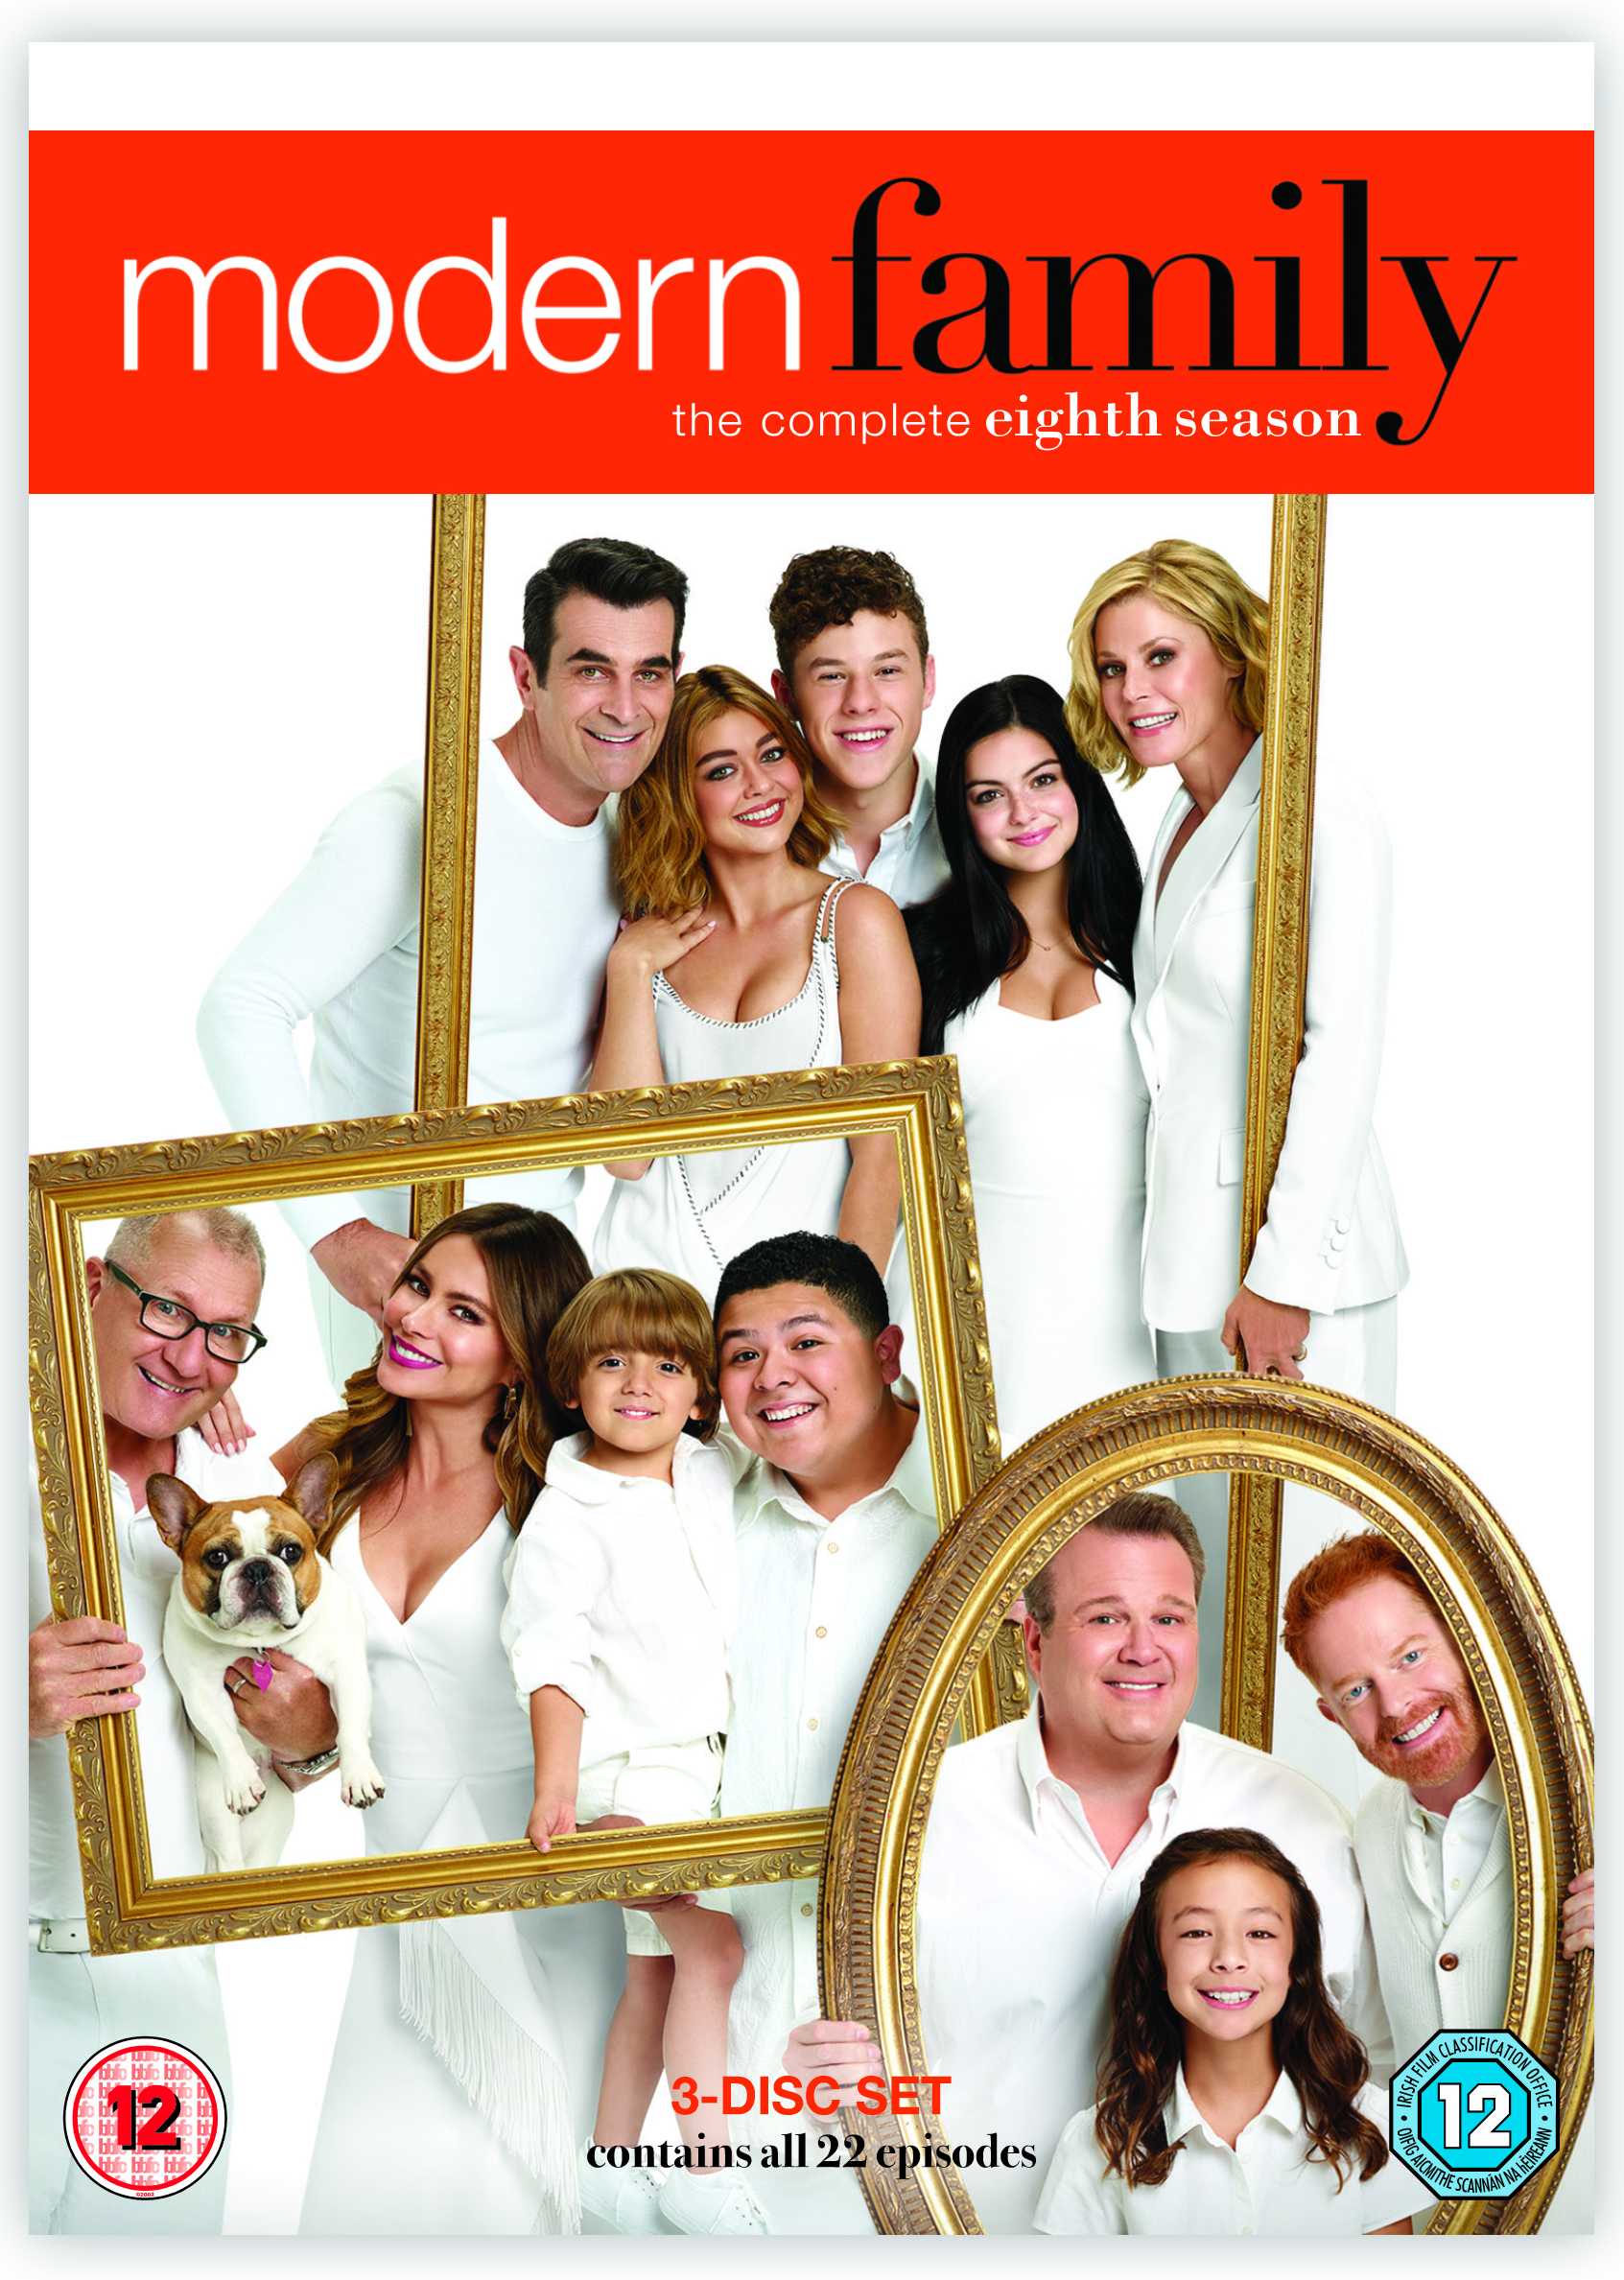 MODERN FAMILY SEASON 8 DVD